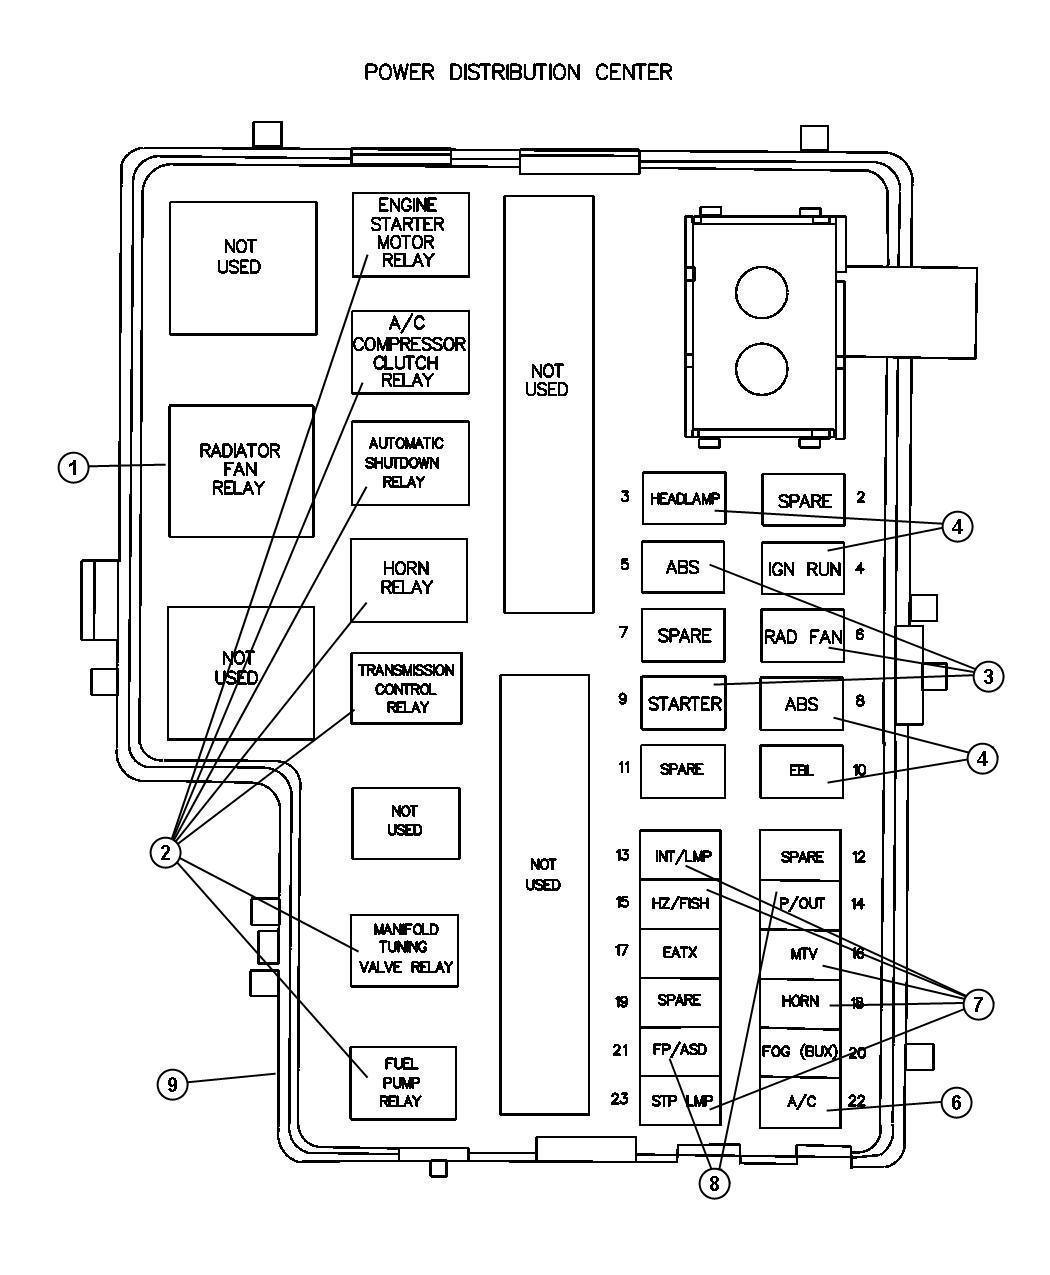 2013 Sprinter Van Fuse Diagram Free Wiring For You 2007 Dodge Land Rover Range Door Lock Engine Image 2006 Mercedes